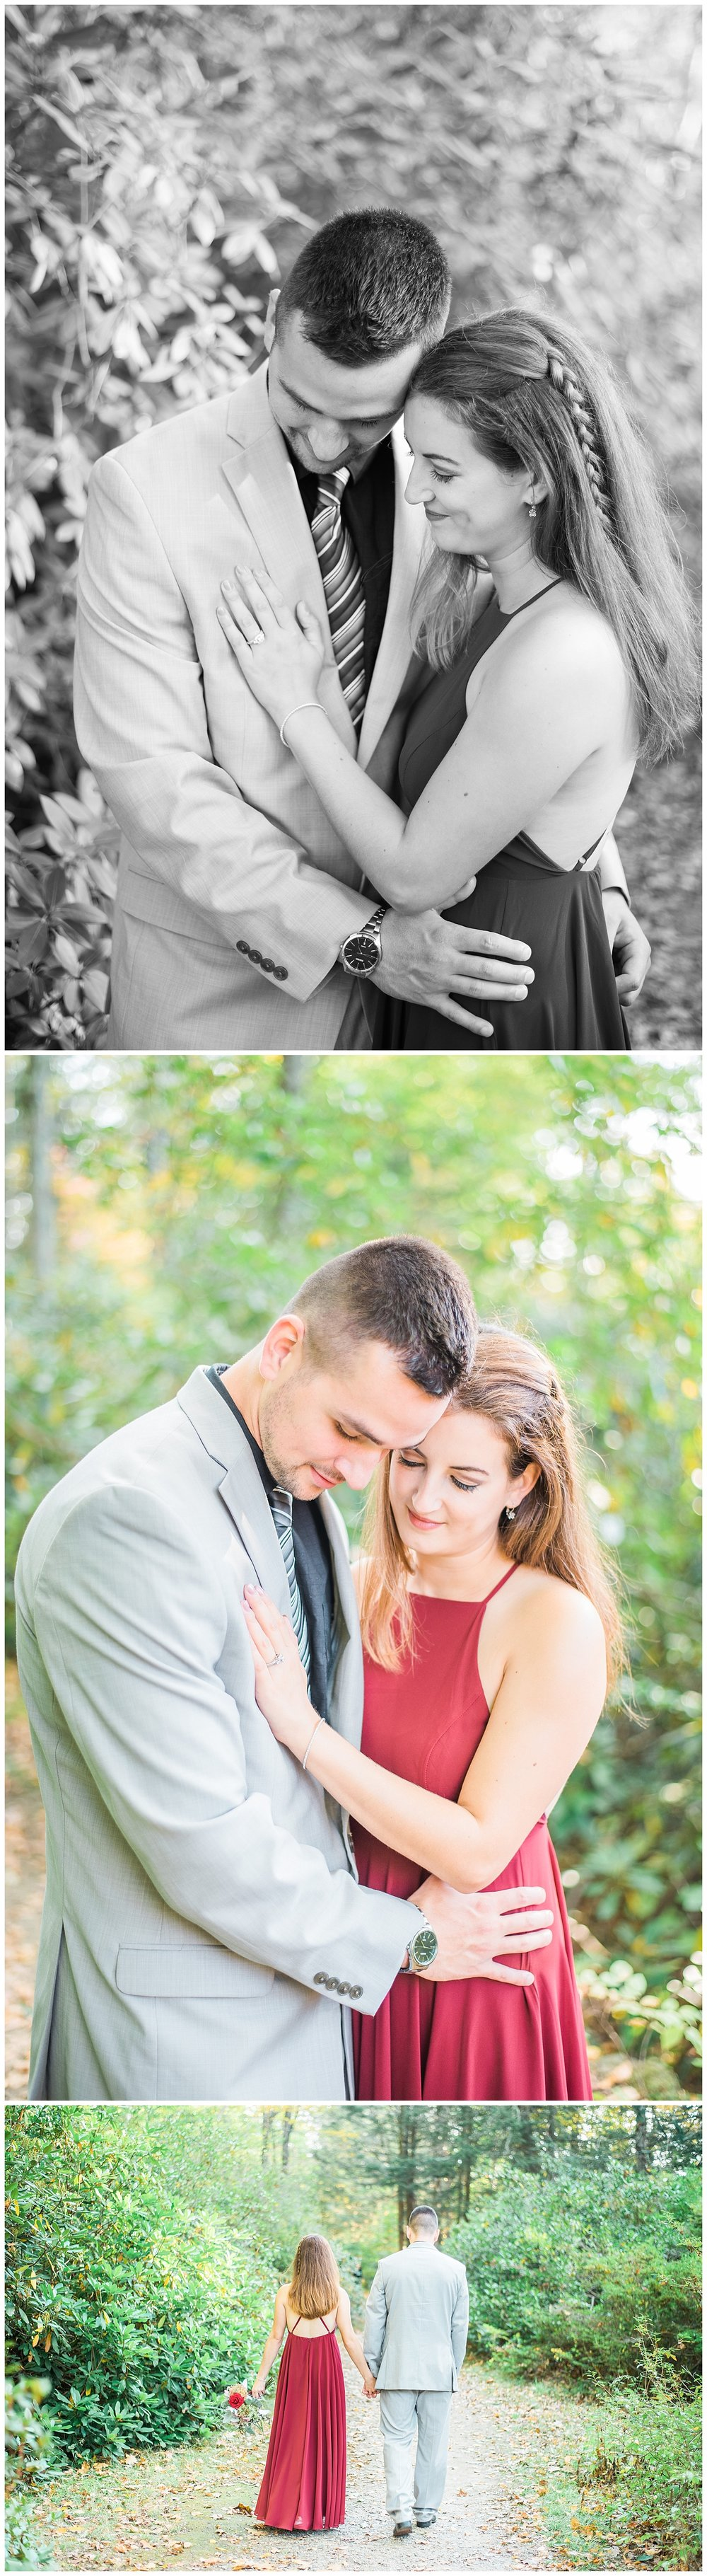 Massachusetts Engagement Photographer J and E 8.jpg